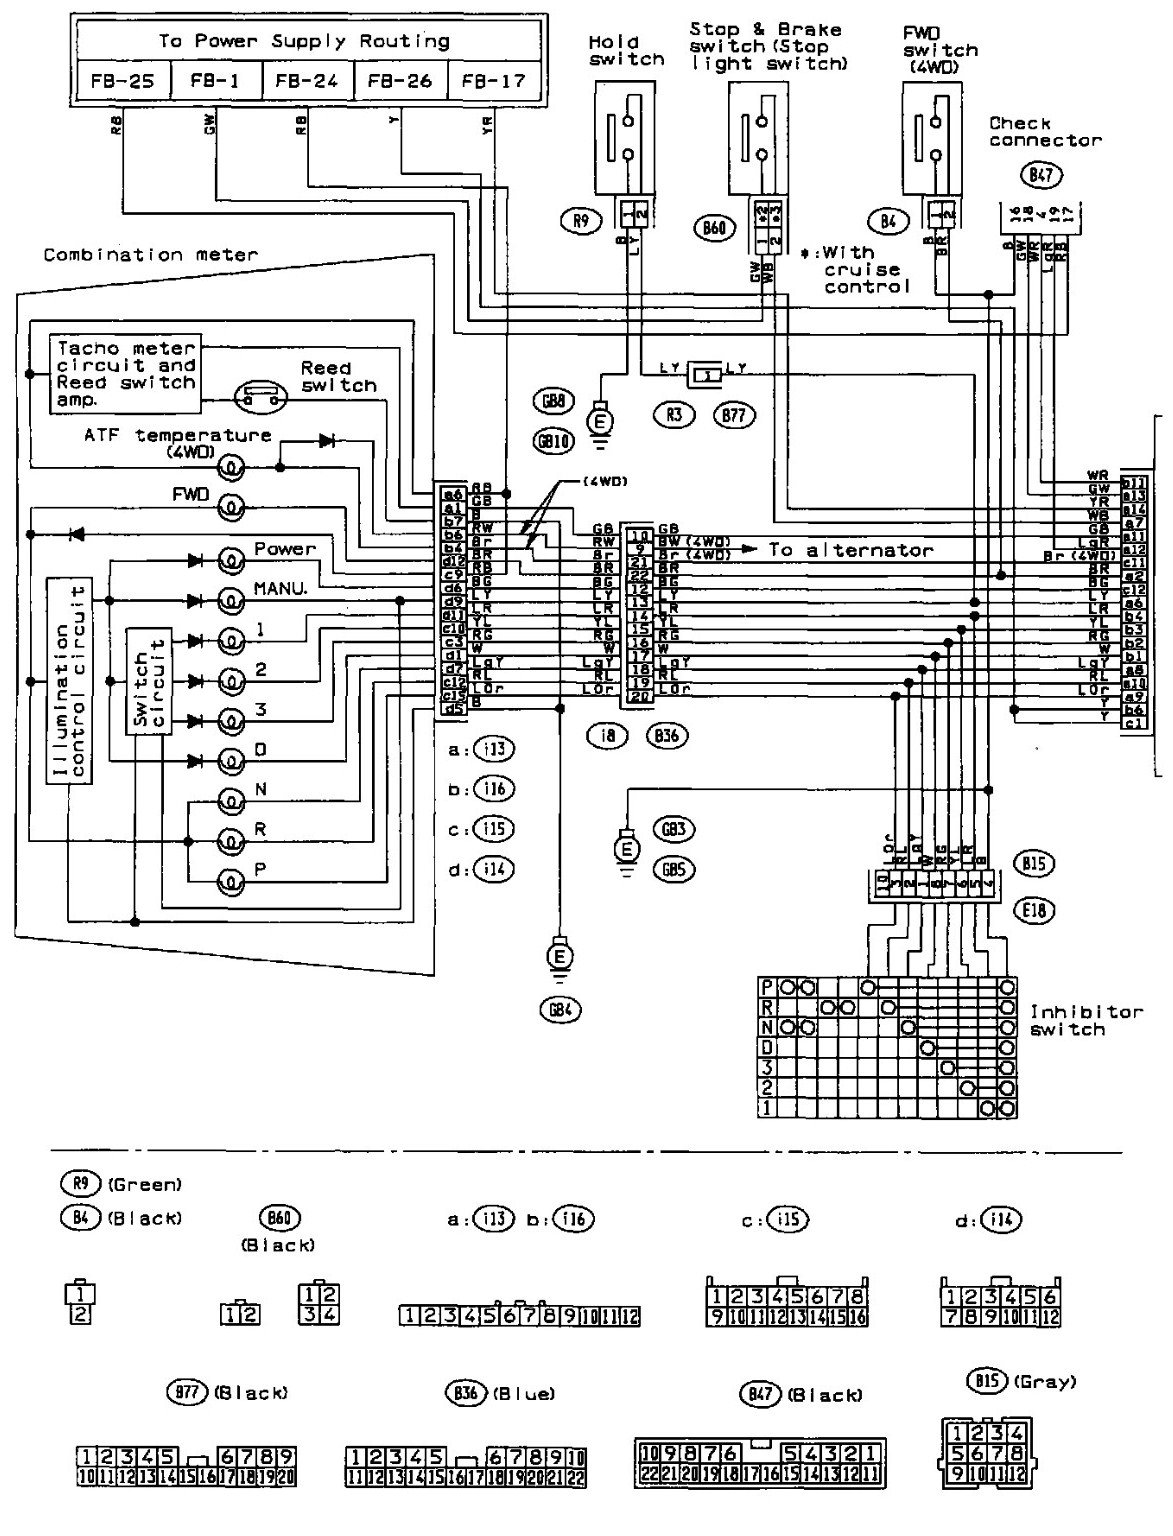 Wiring Diagram 2006 Subaru Legacy on 1998 subaru forester relay diagram